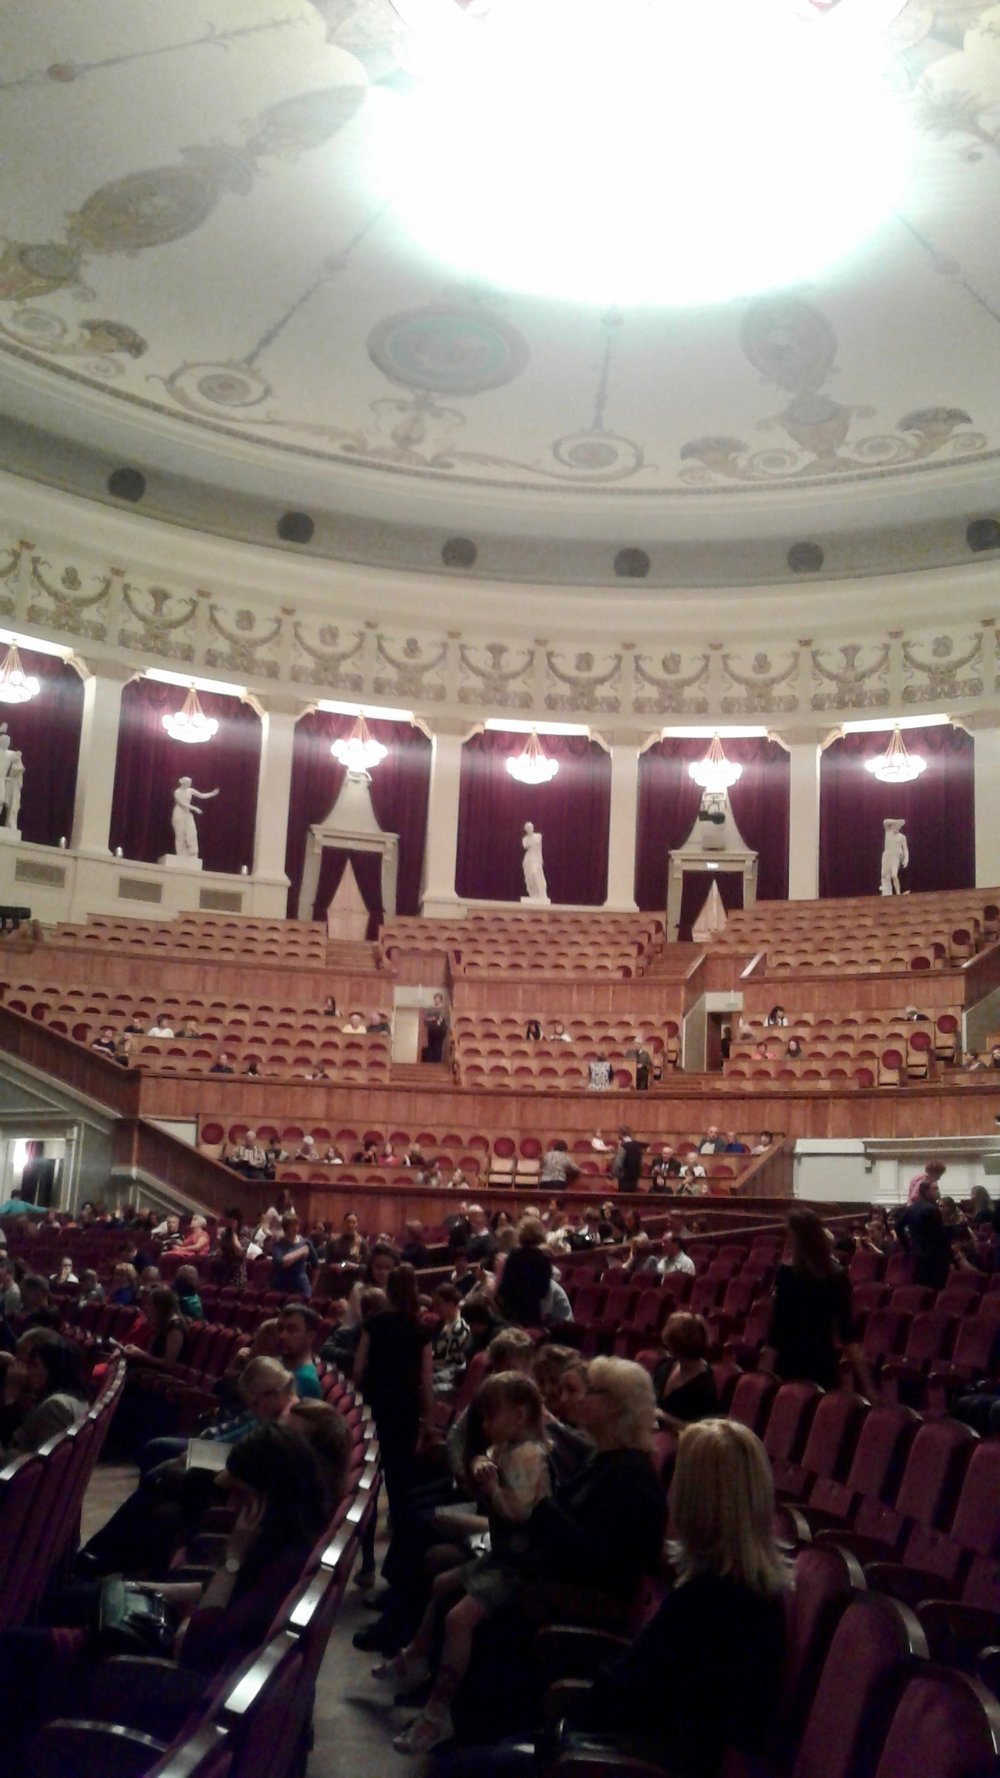 Inside view of the Novosibirsk Opera and Ballet Theatre.